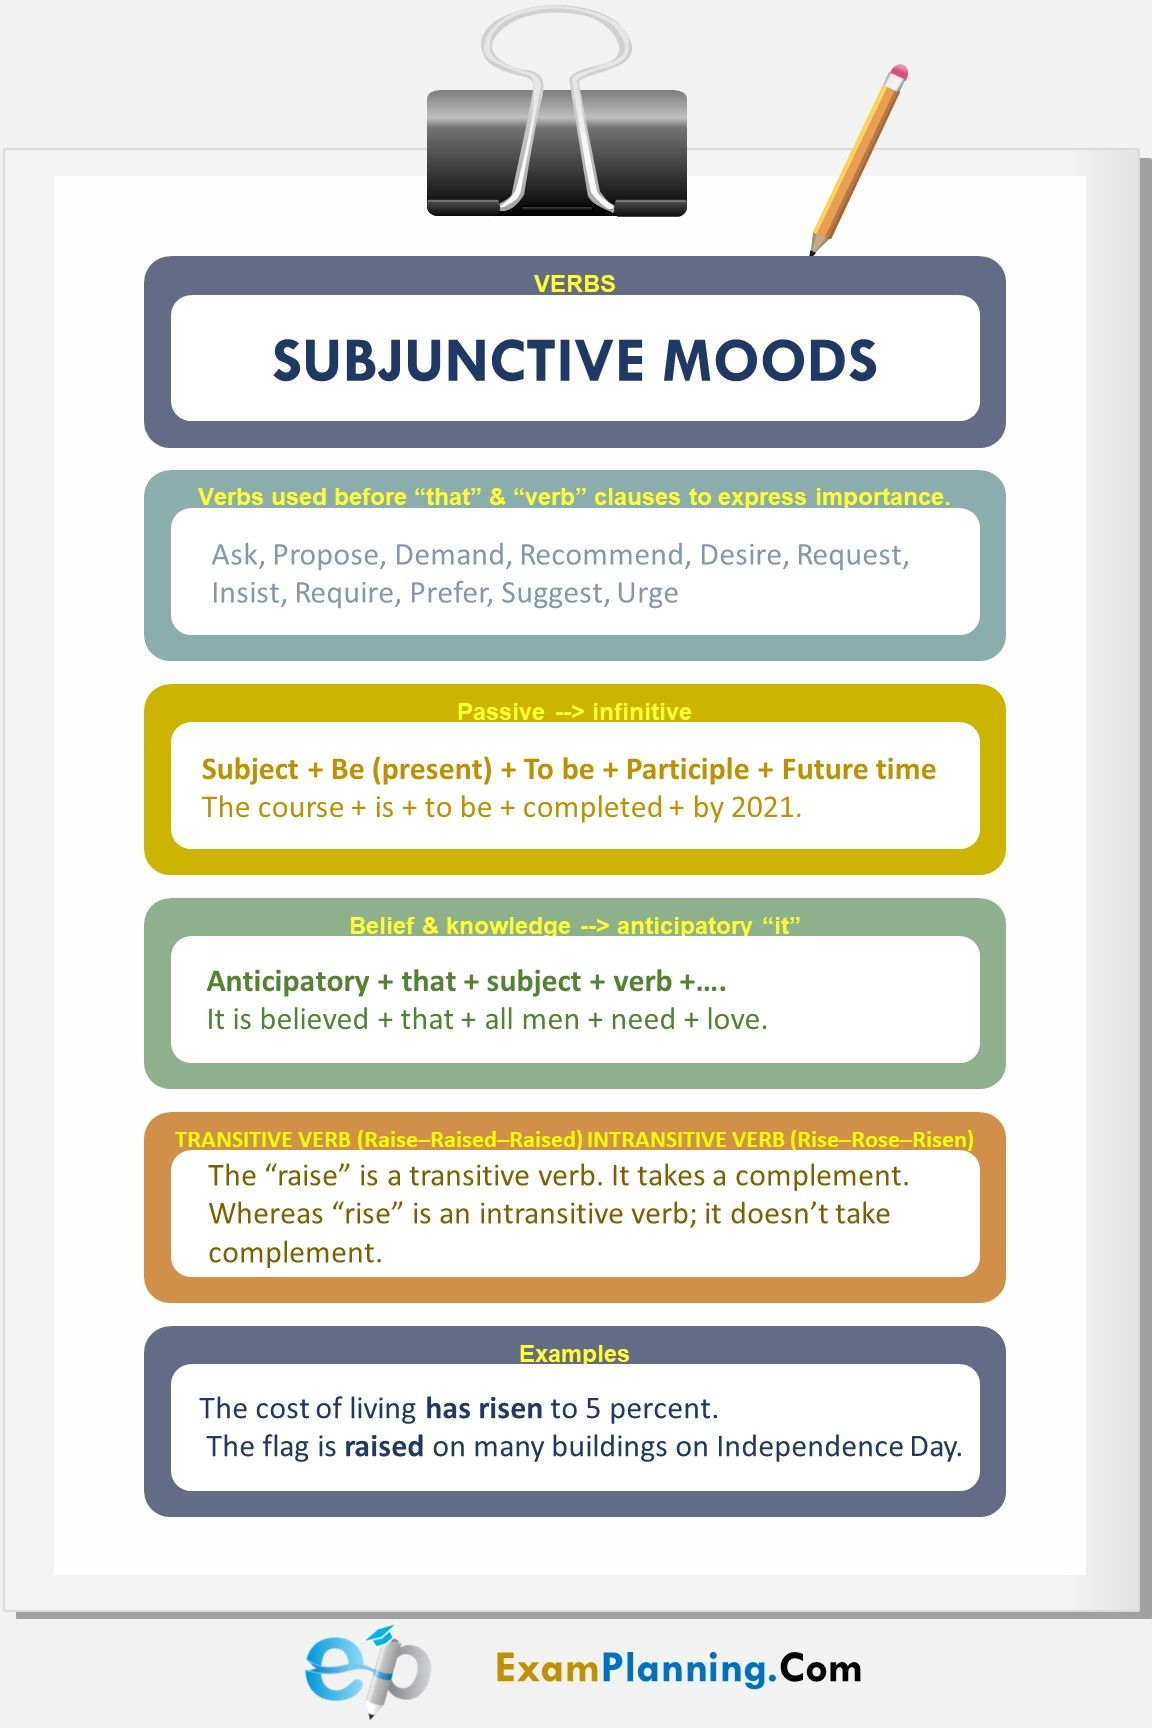 Subjunctive Moods New Words In English Subject And Verb Mood [ 1728 x 1152 Pixel ]